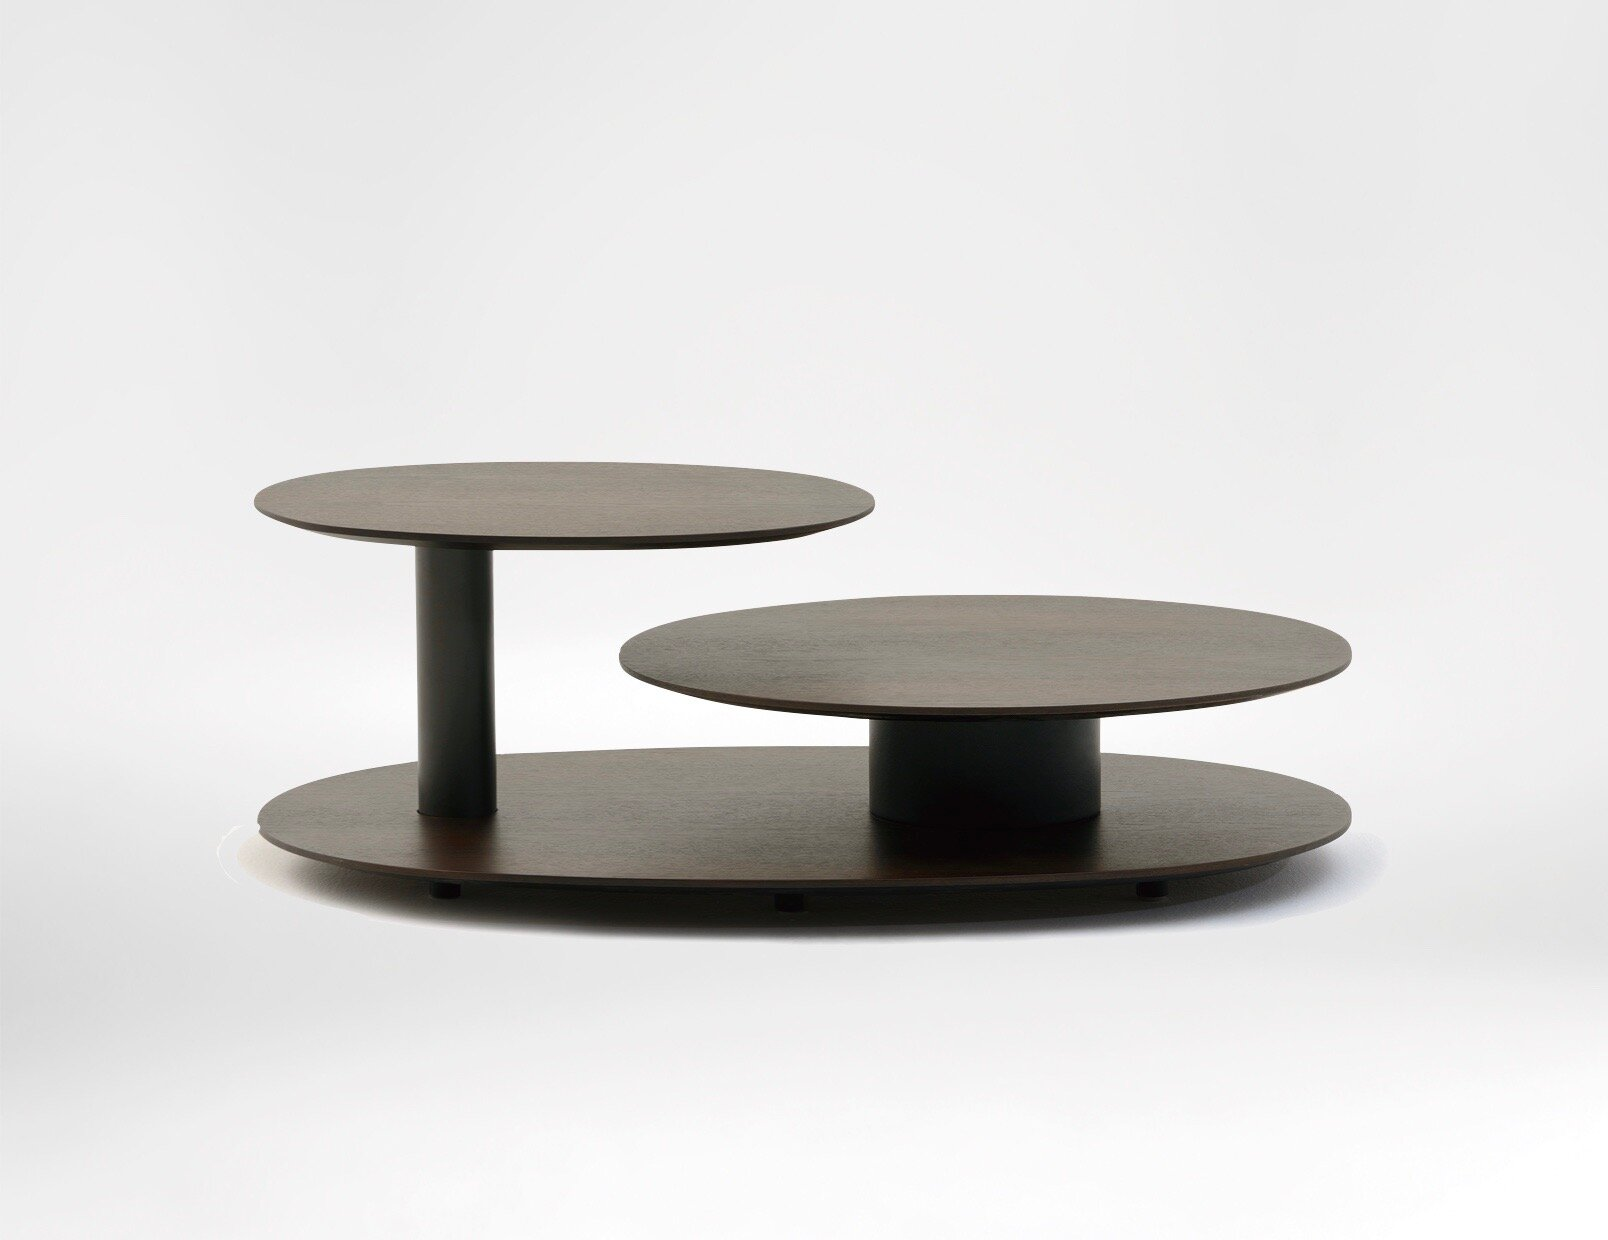 Lotus Coffee Table - With a pivoting top level, the Lotus is able to provide surface space right where you need it.